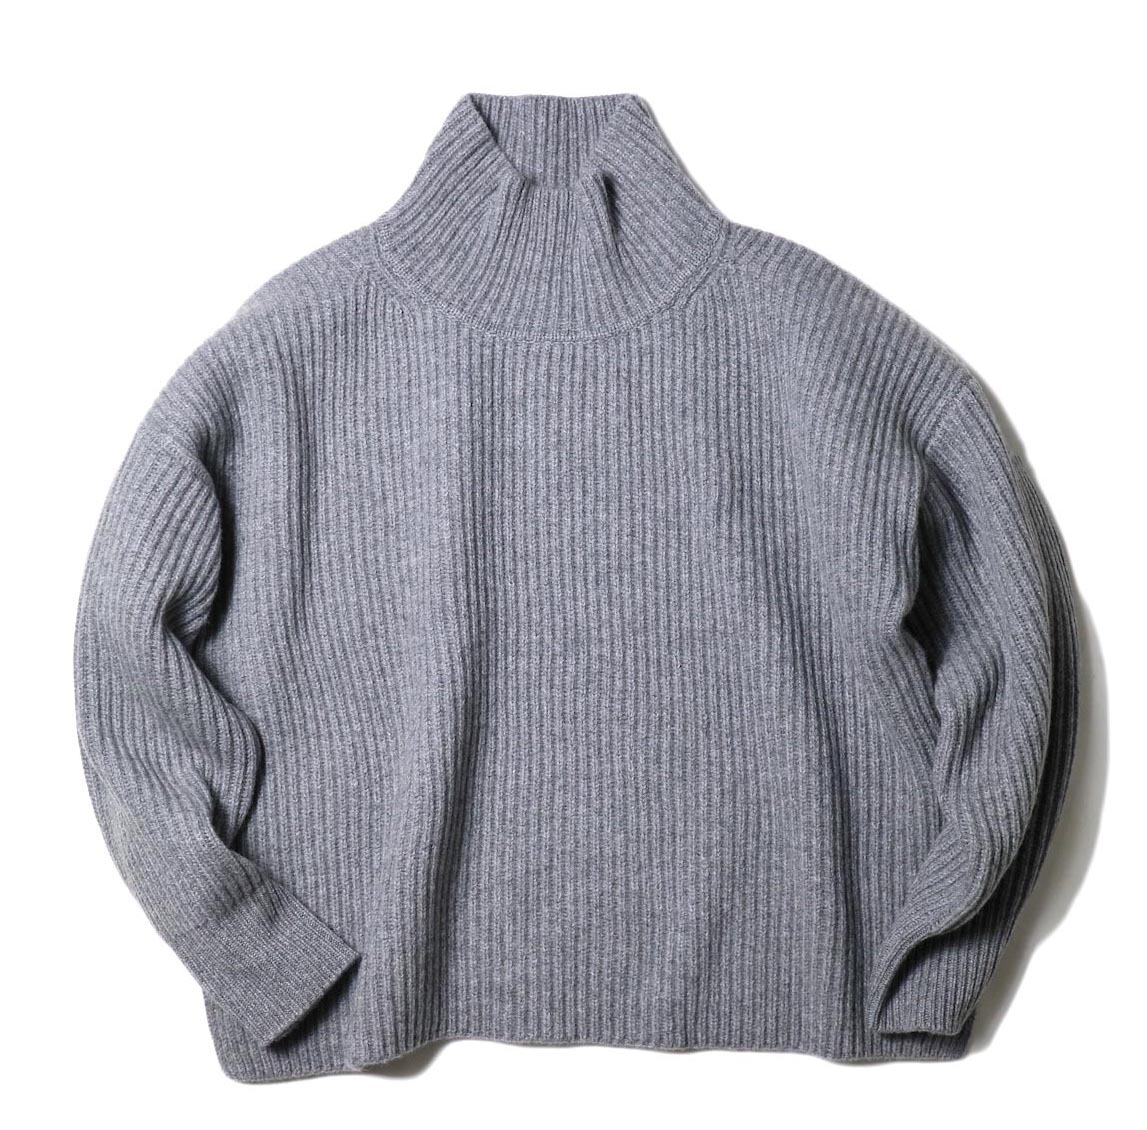 YLEVE / EXTRAFINE MERINO WOOL RIB KN TURTLE (grey) 正面